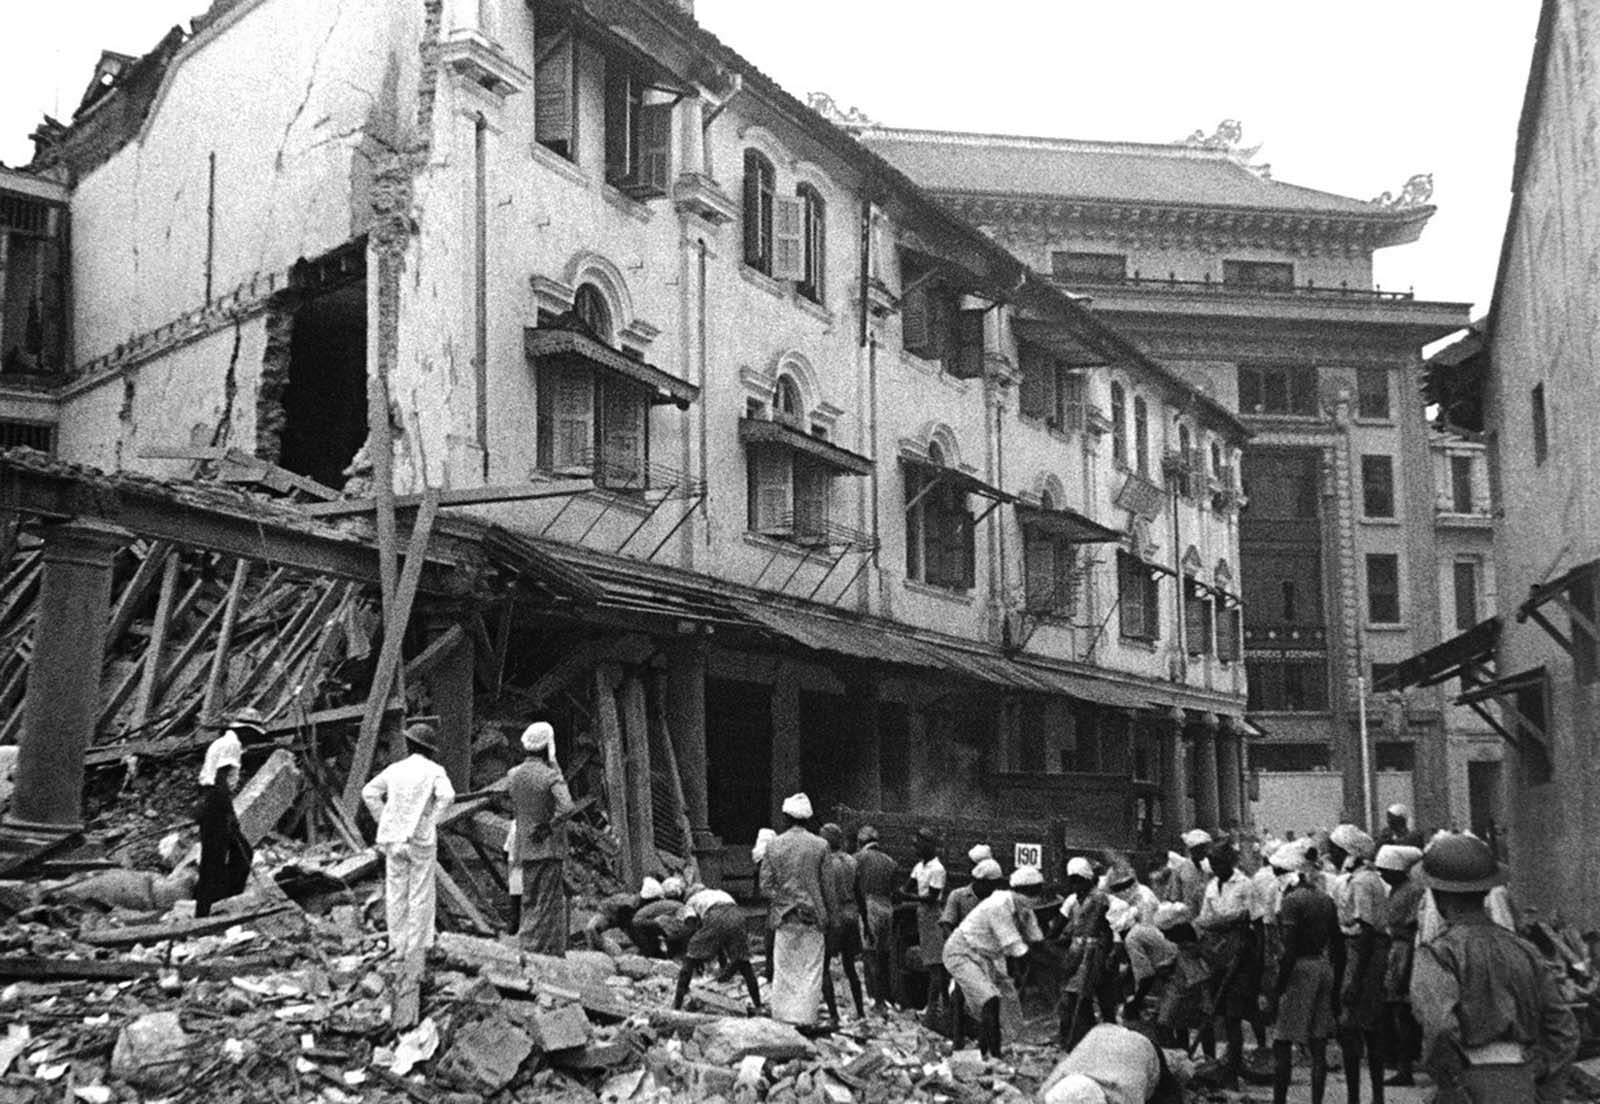 Workmen clear up raid debris in Singapore on January 17, 1942, after a Japanese bombing raid on the British naval base.